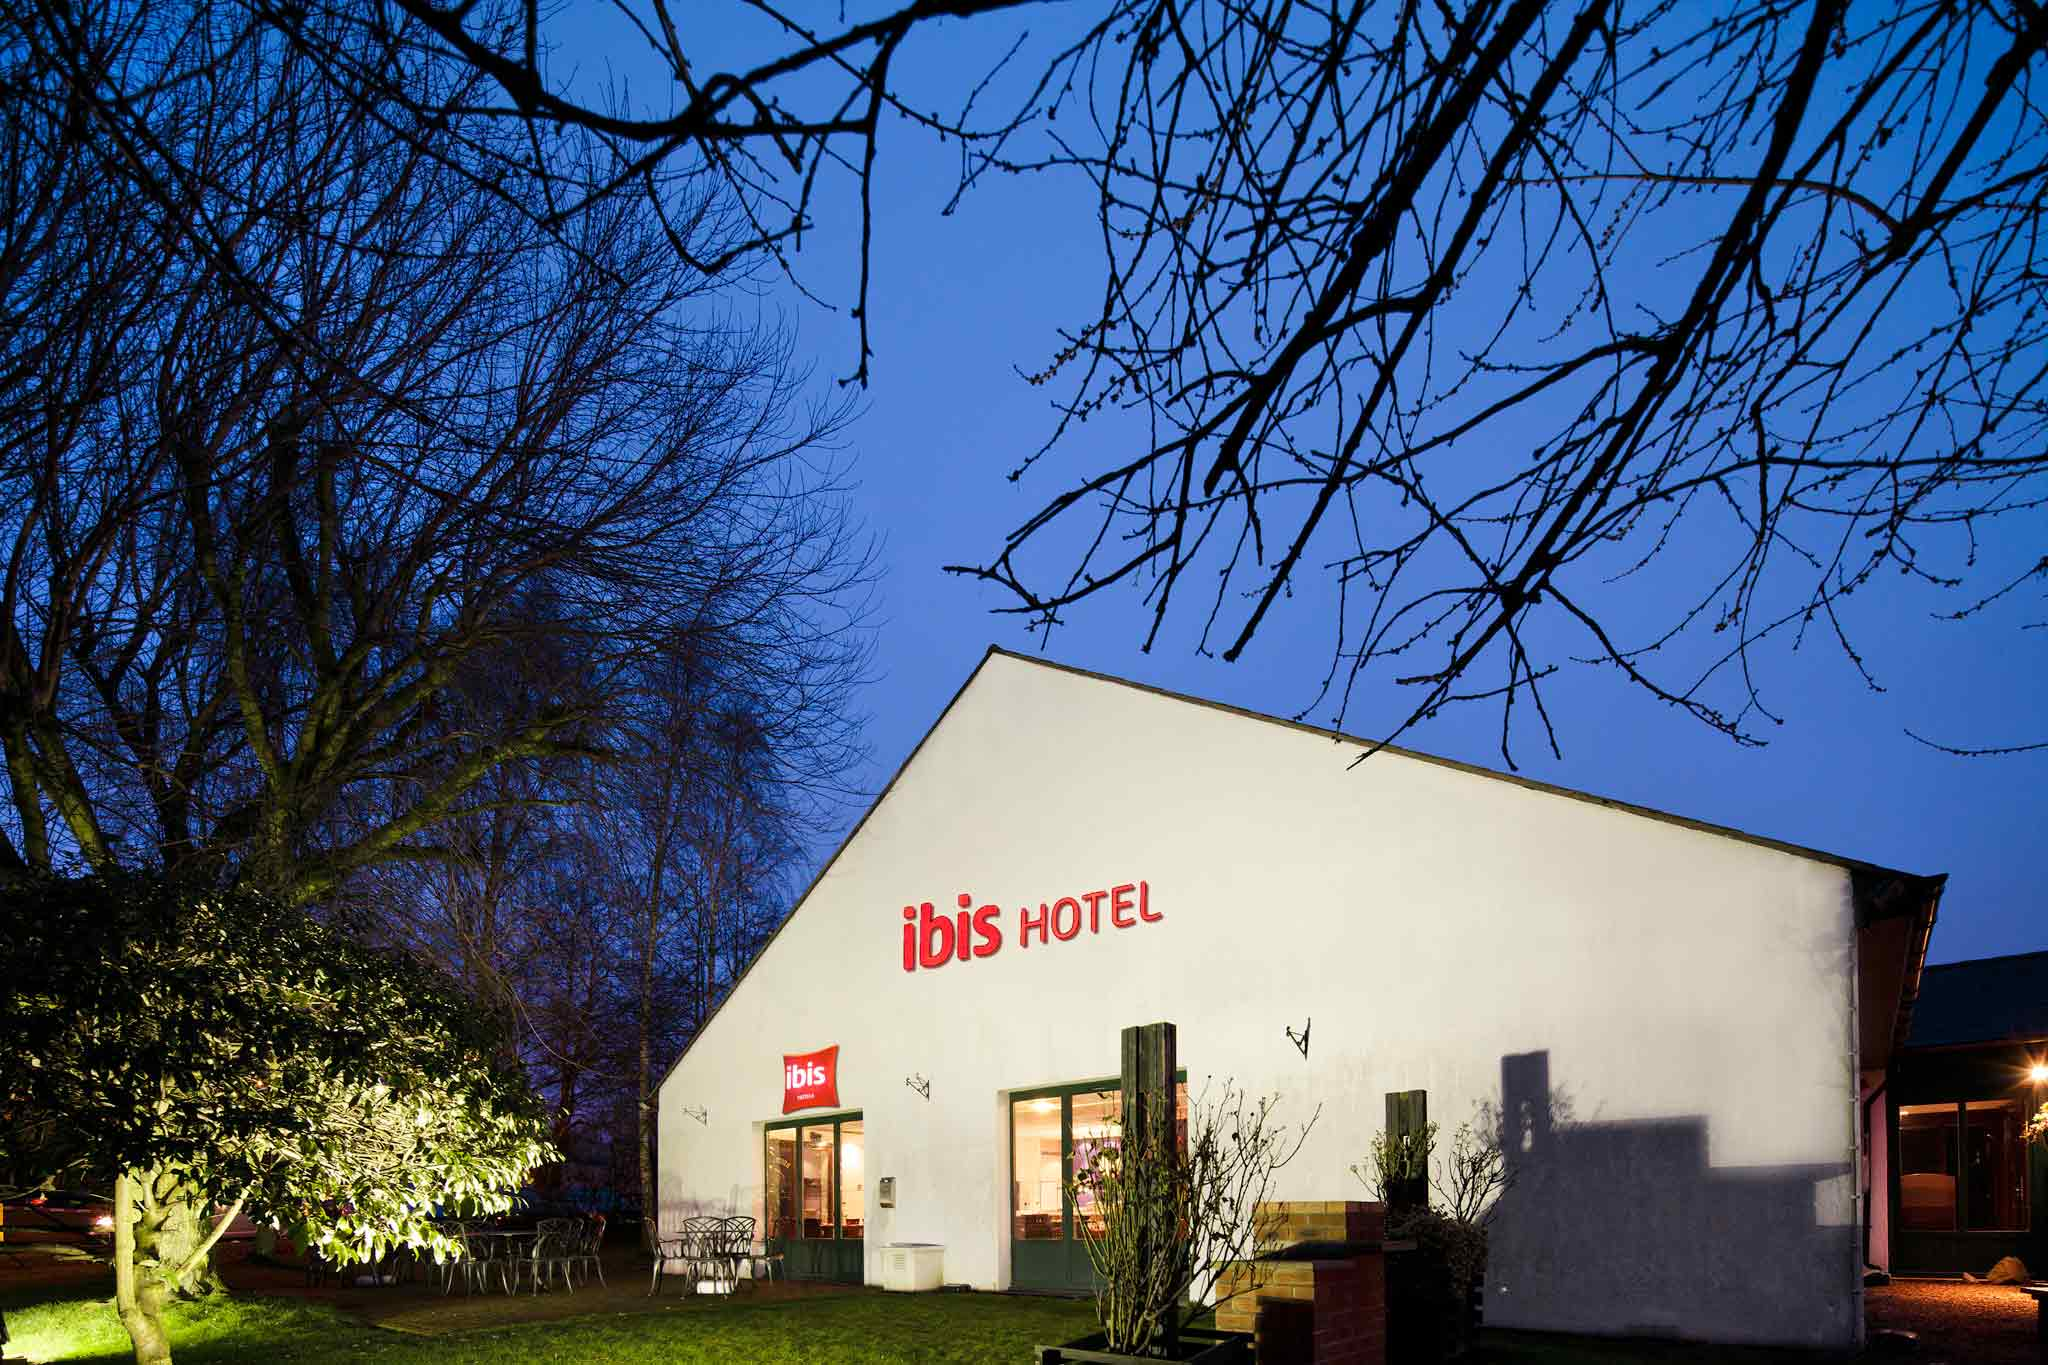 Hotell – ibis Coventry South